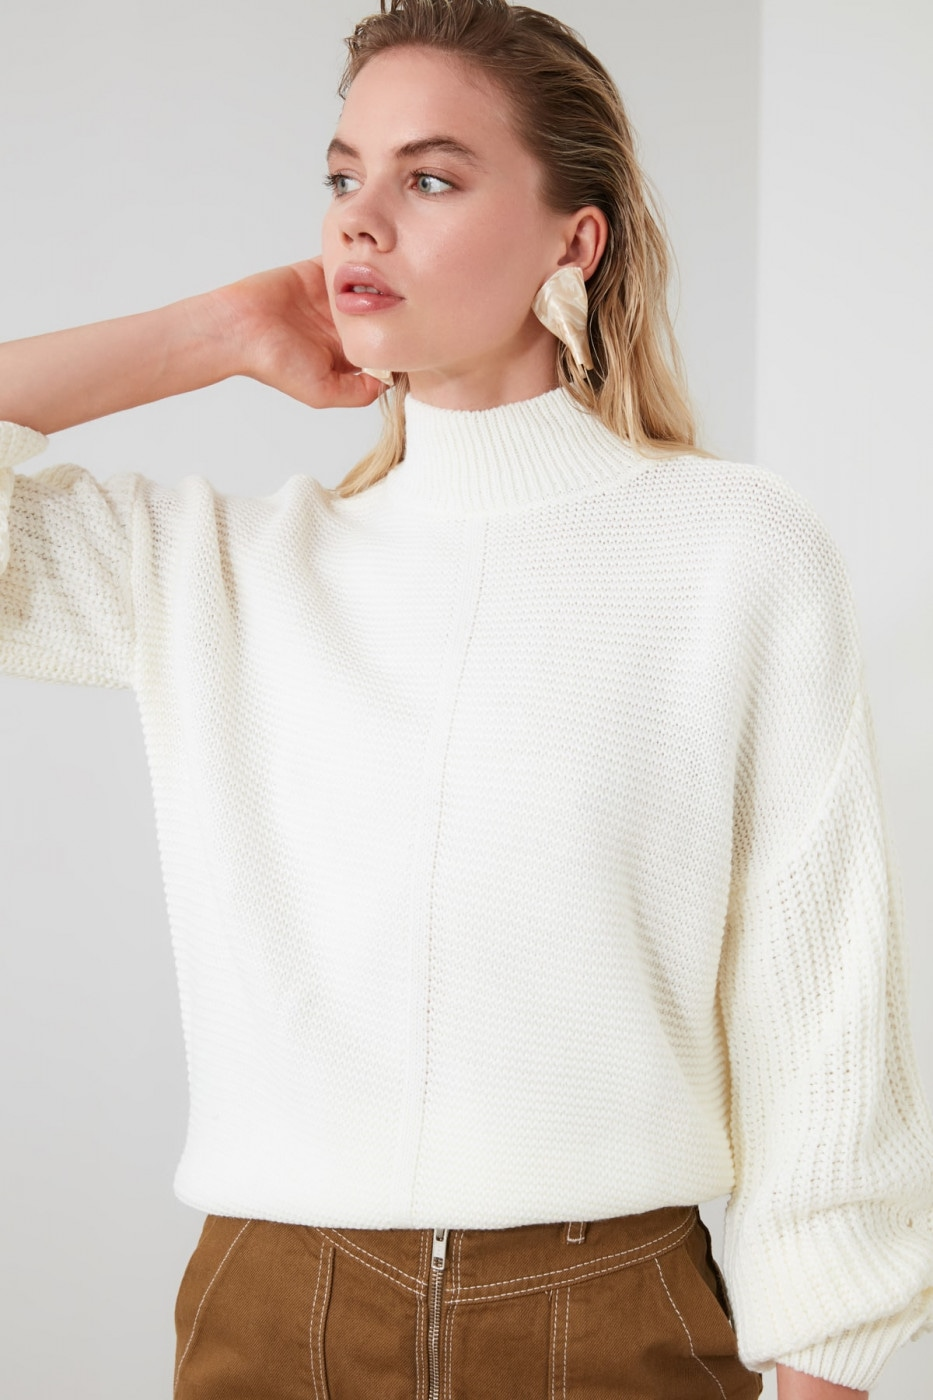 Trendyol Ekru Braided Upright Collar Knitwear Sweater